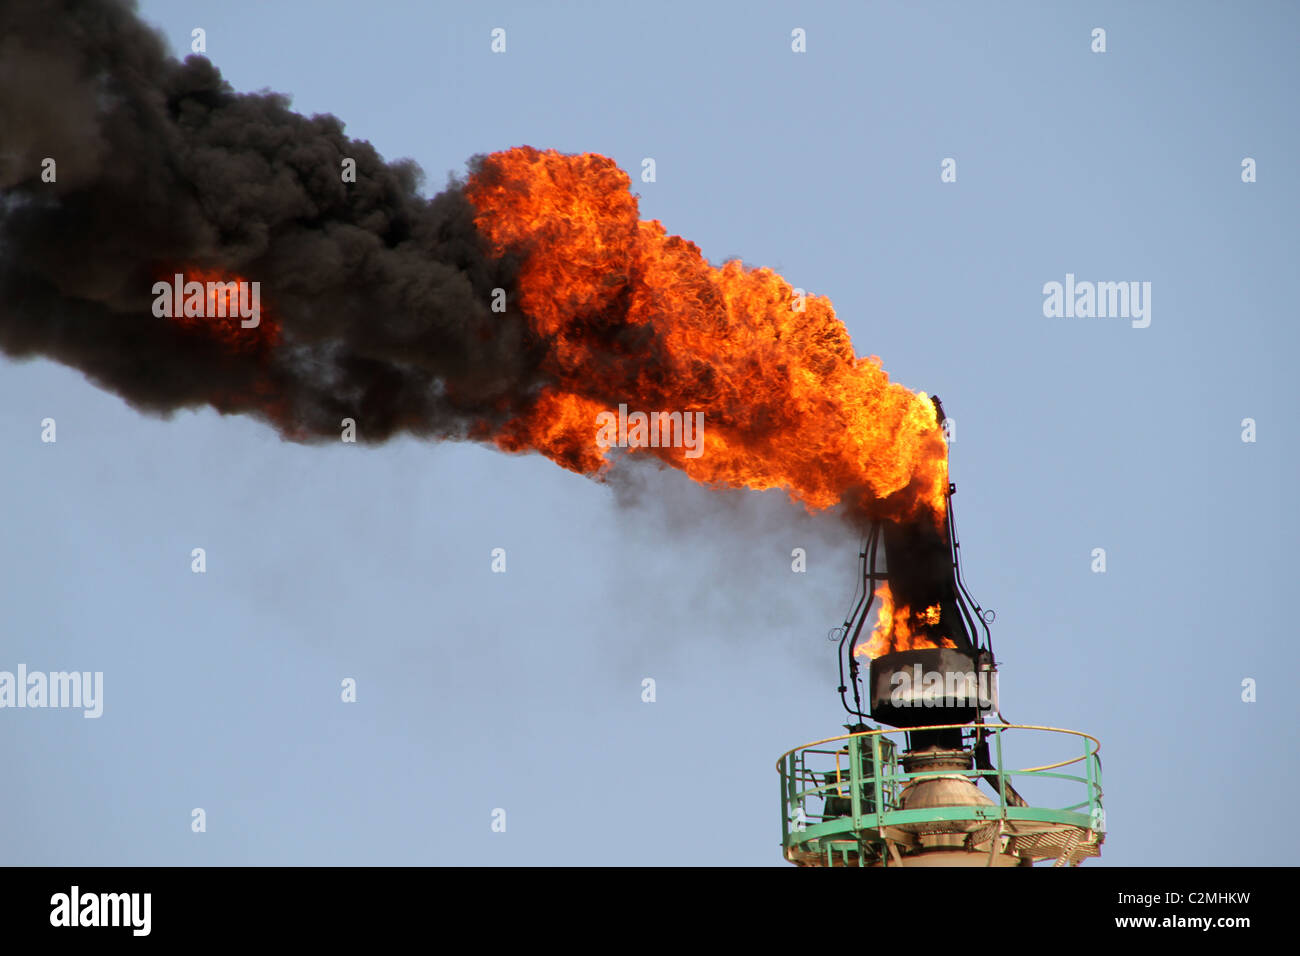 Huge flames leak from a gas pipe - Stock Image